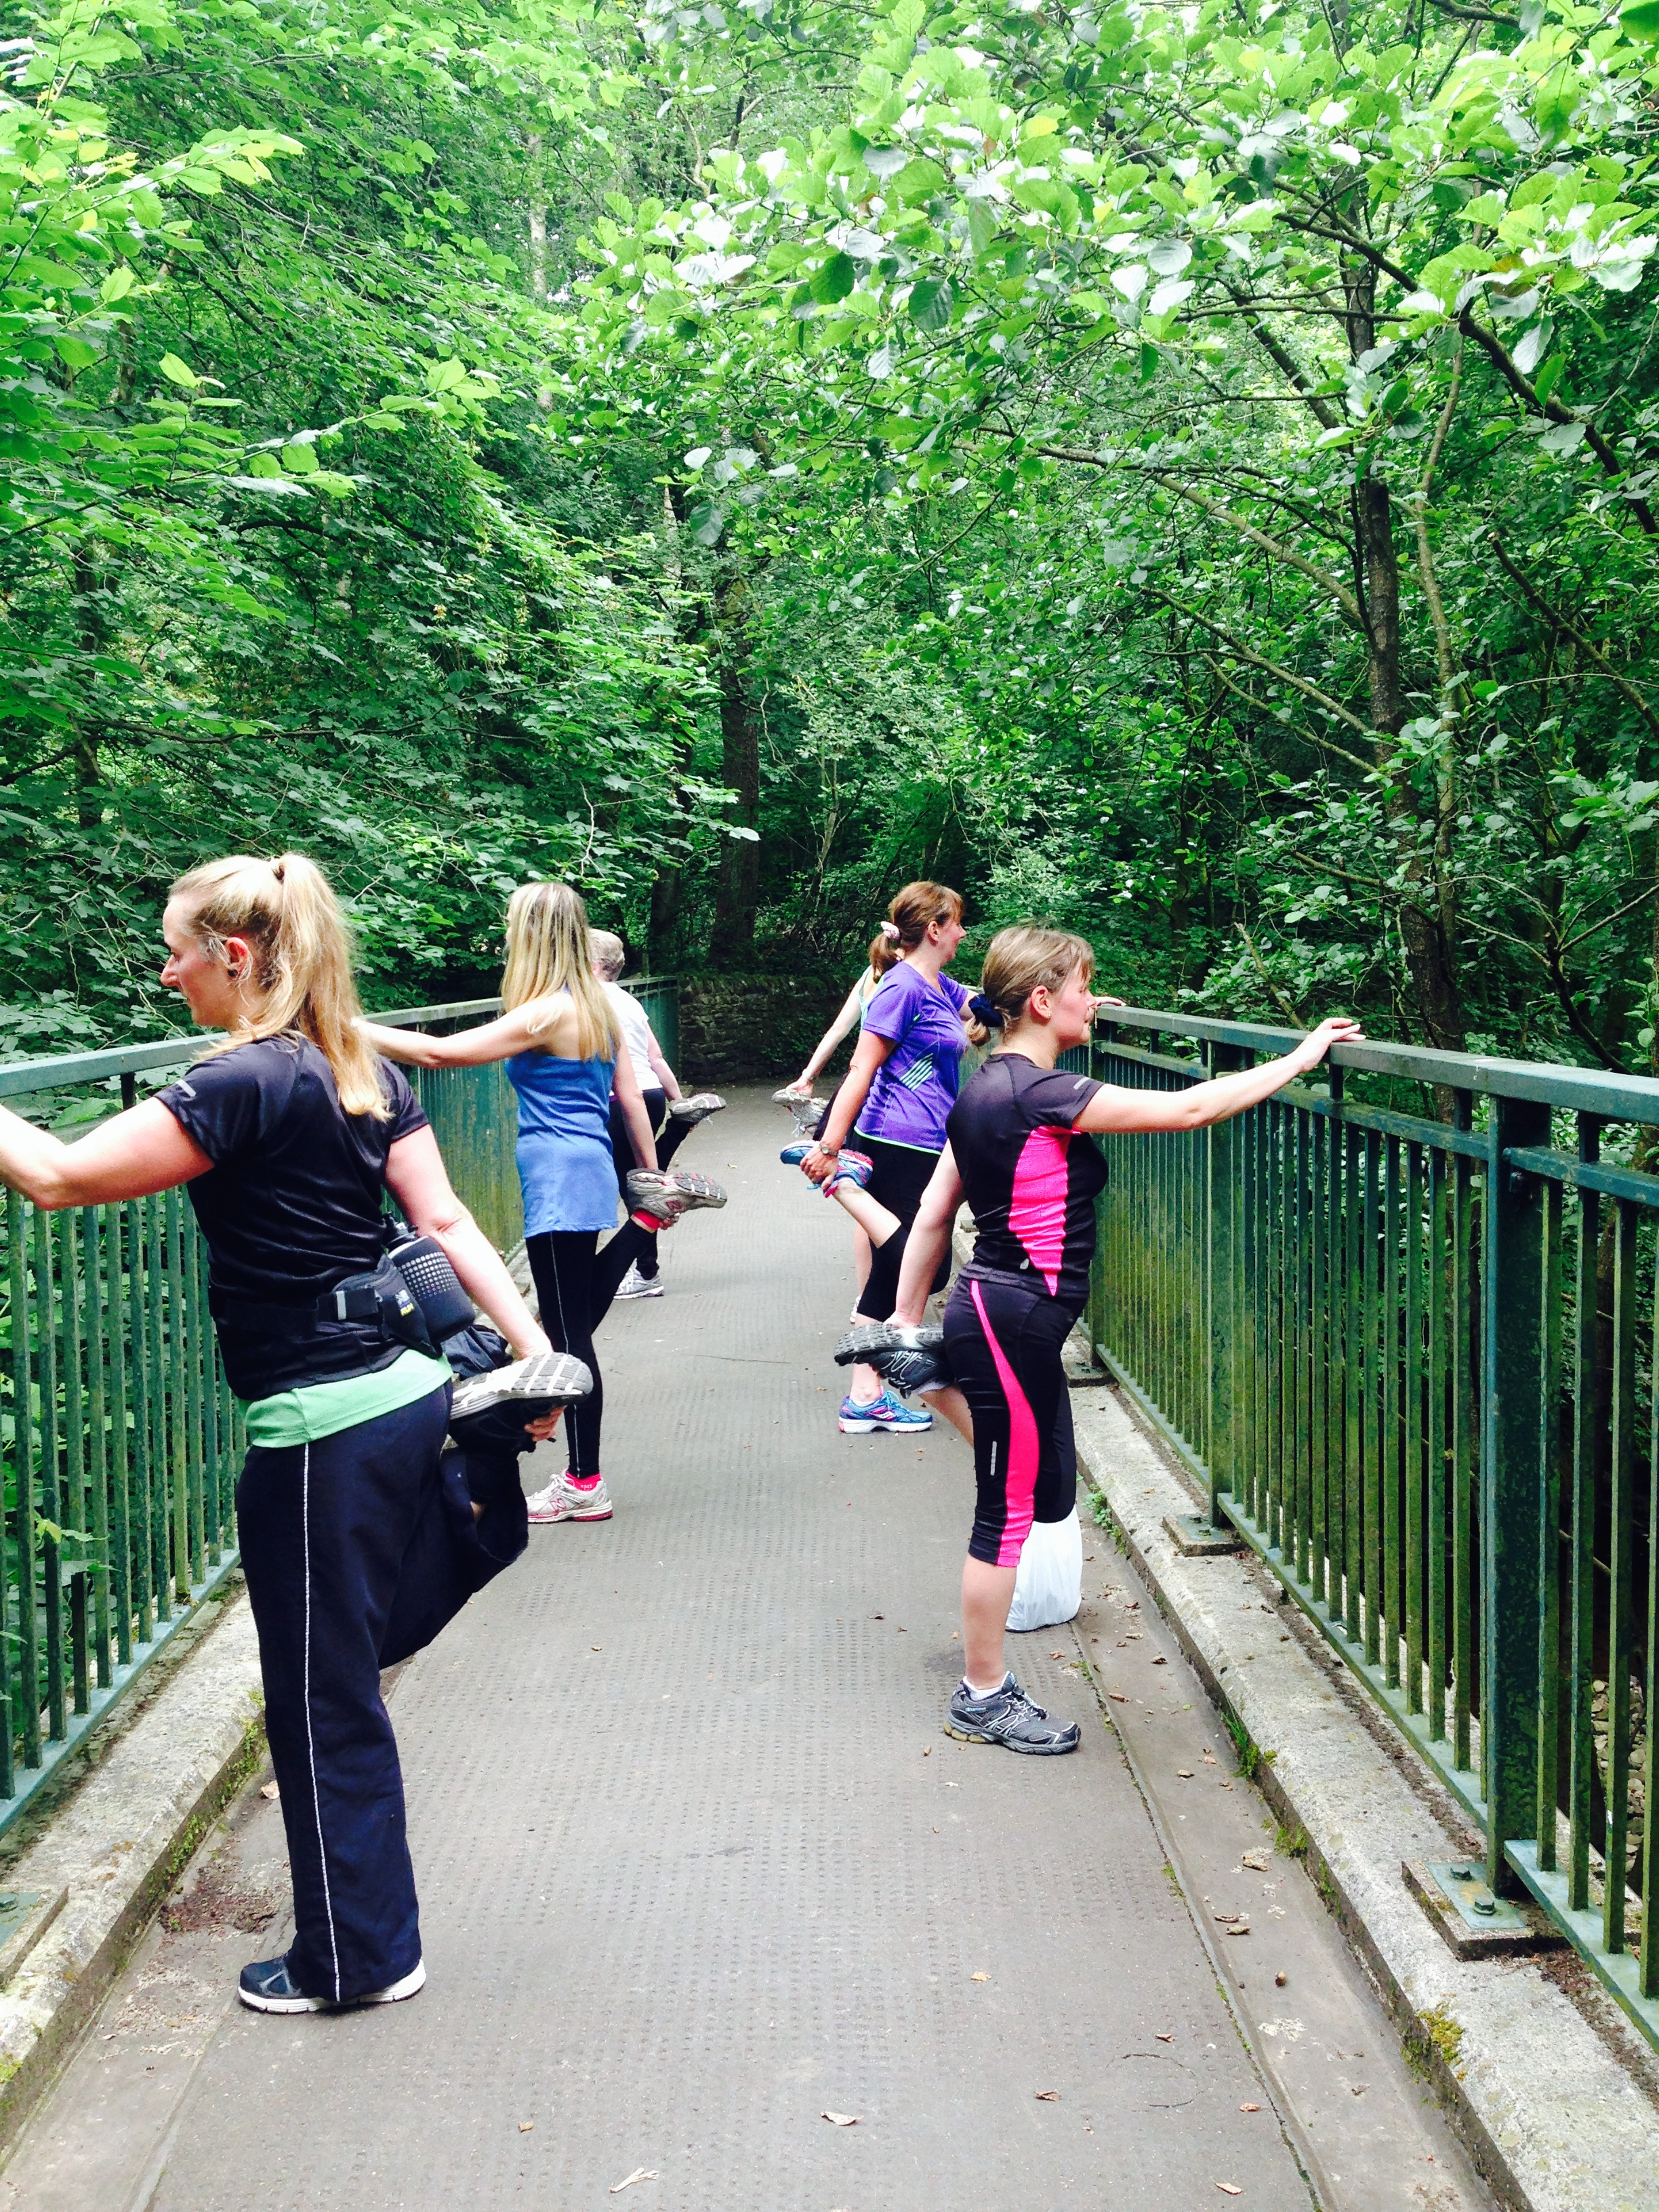 Women stretching on bridge in woodland